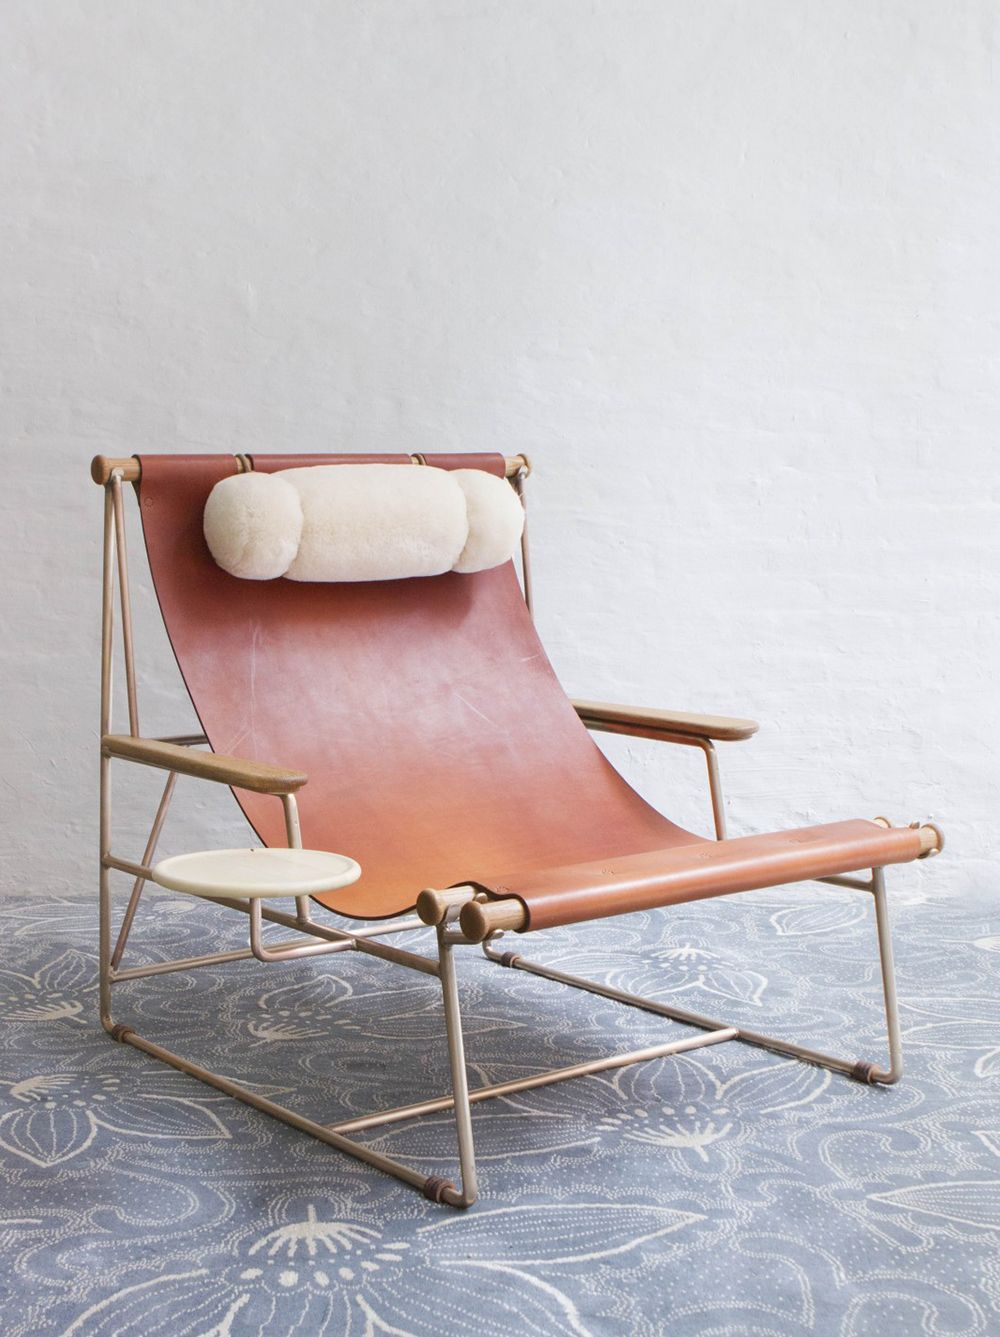 May I introduce you to the most stunningpiece of furnitureyou never knew you needed This gorgeouschair with its simple leather seat bronzeframe sh...